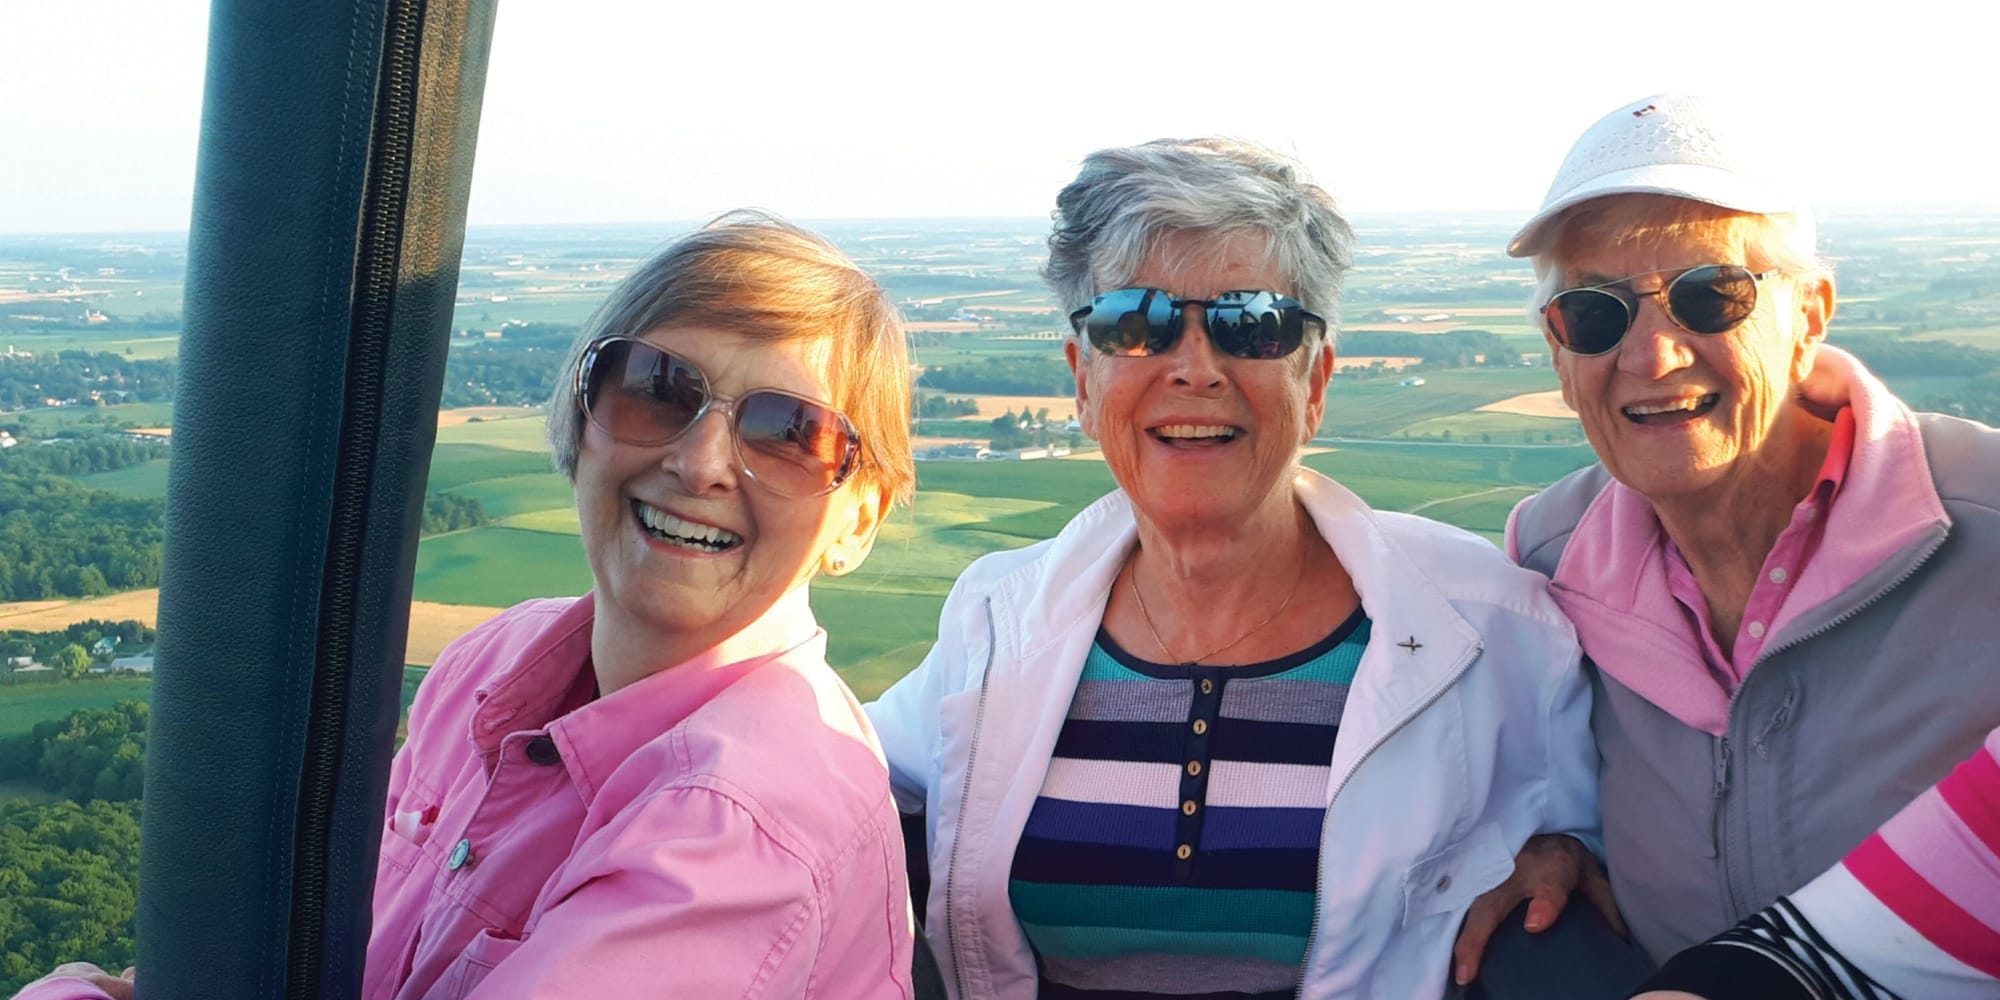 Residents from Chesterfield Heights in Midlothian, Virginia taking a air balloon tour